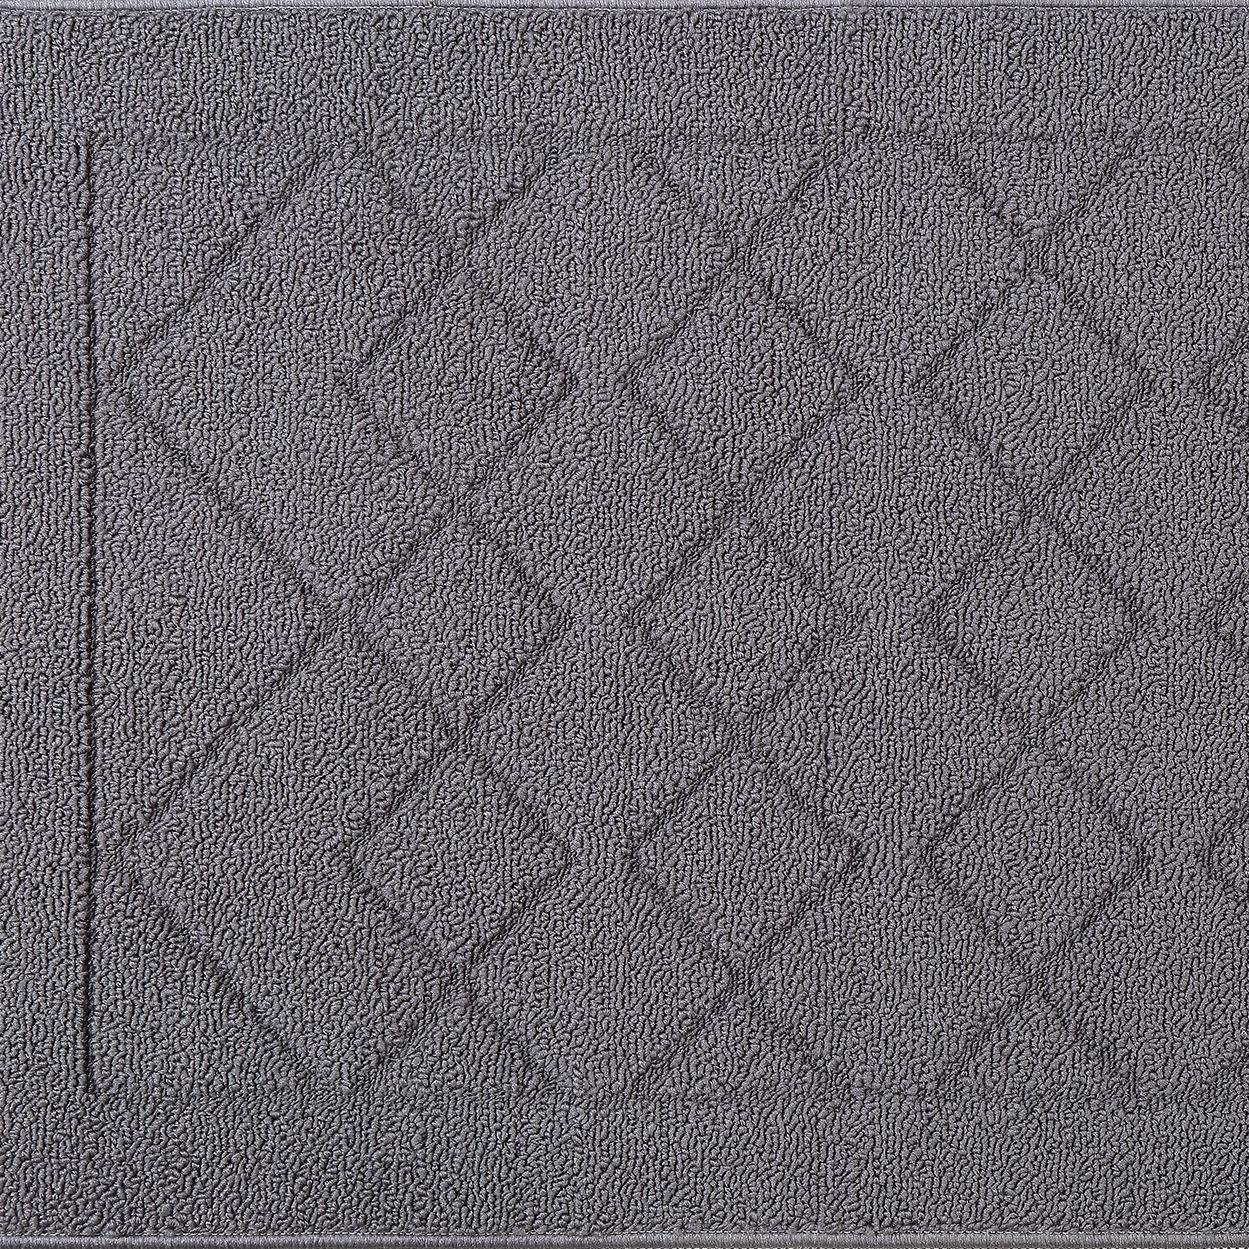 Online shopping floor comfort polypropylene wholesale door mats